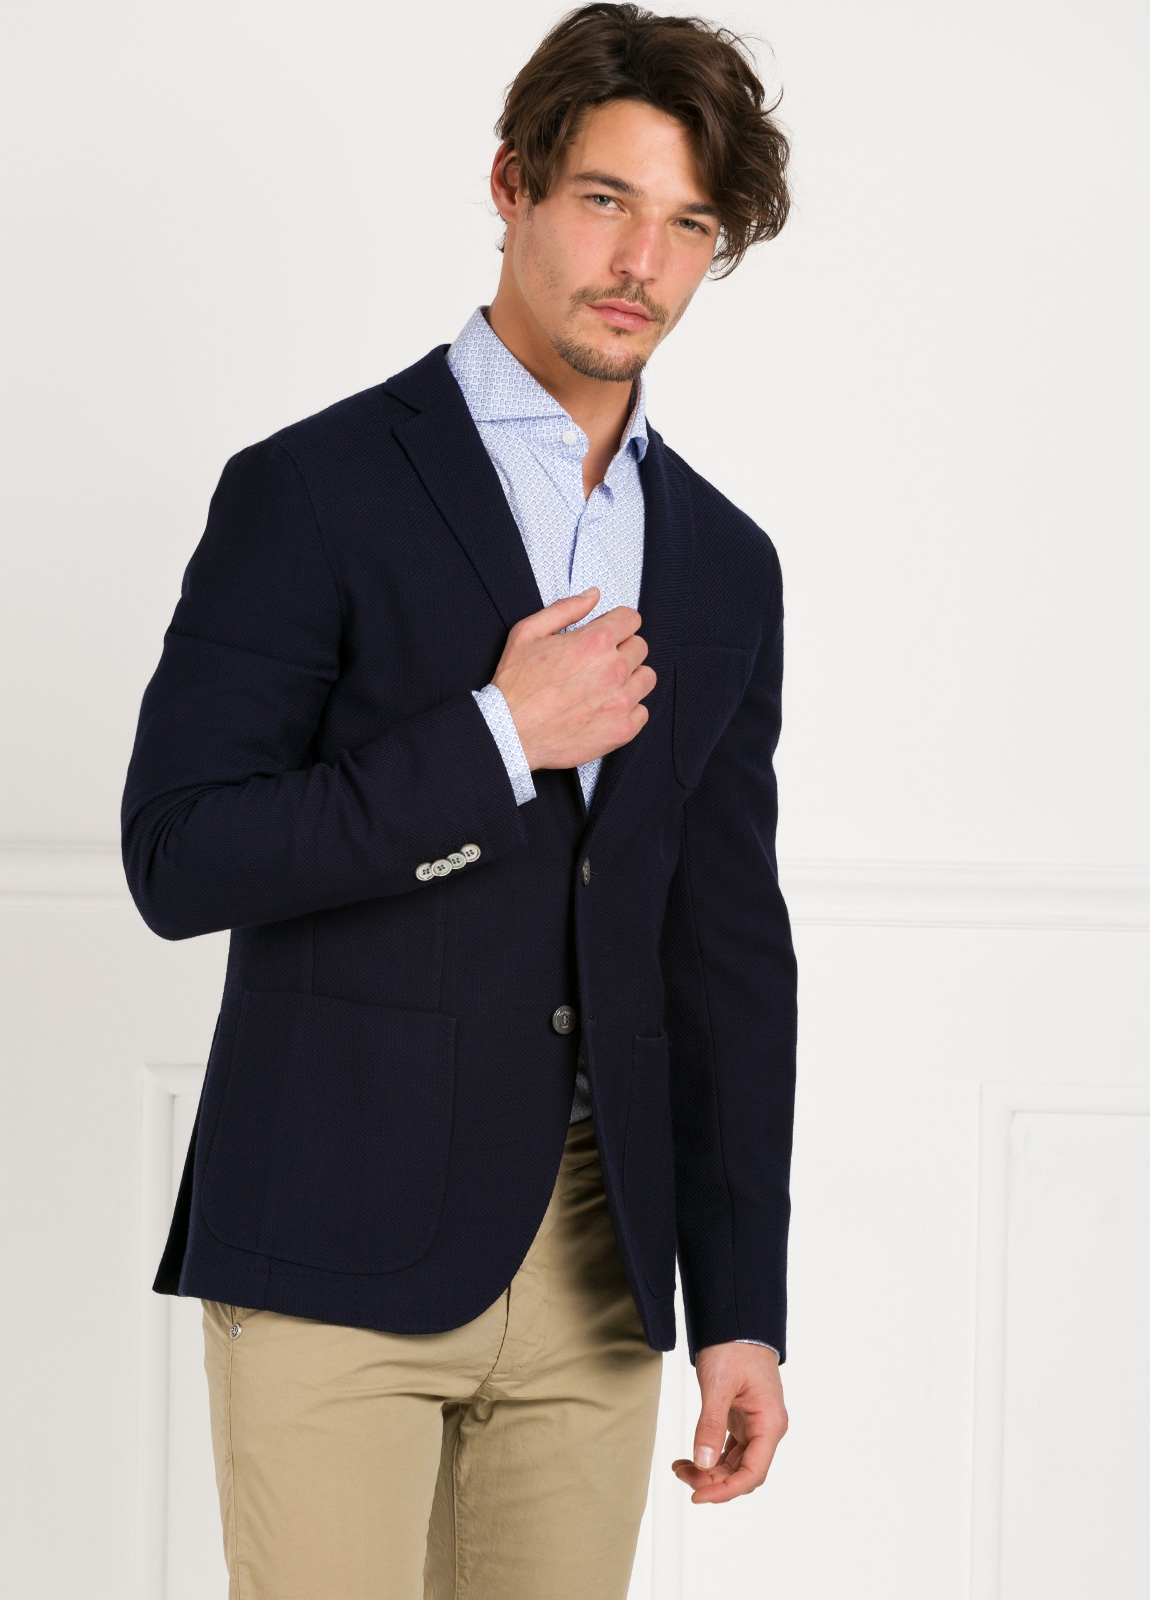 Americana SOFT JACKET Slim Fit textura color azul marino, 100% Lana fria. - Ítem3